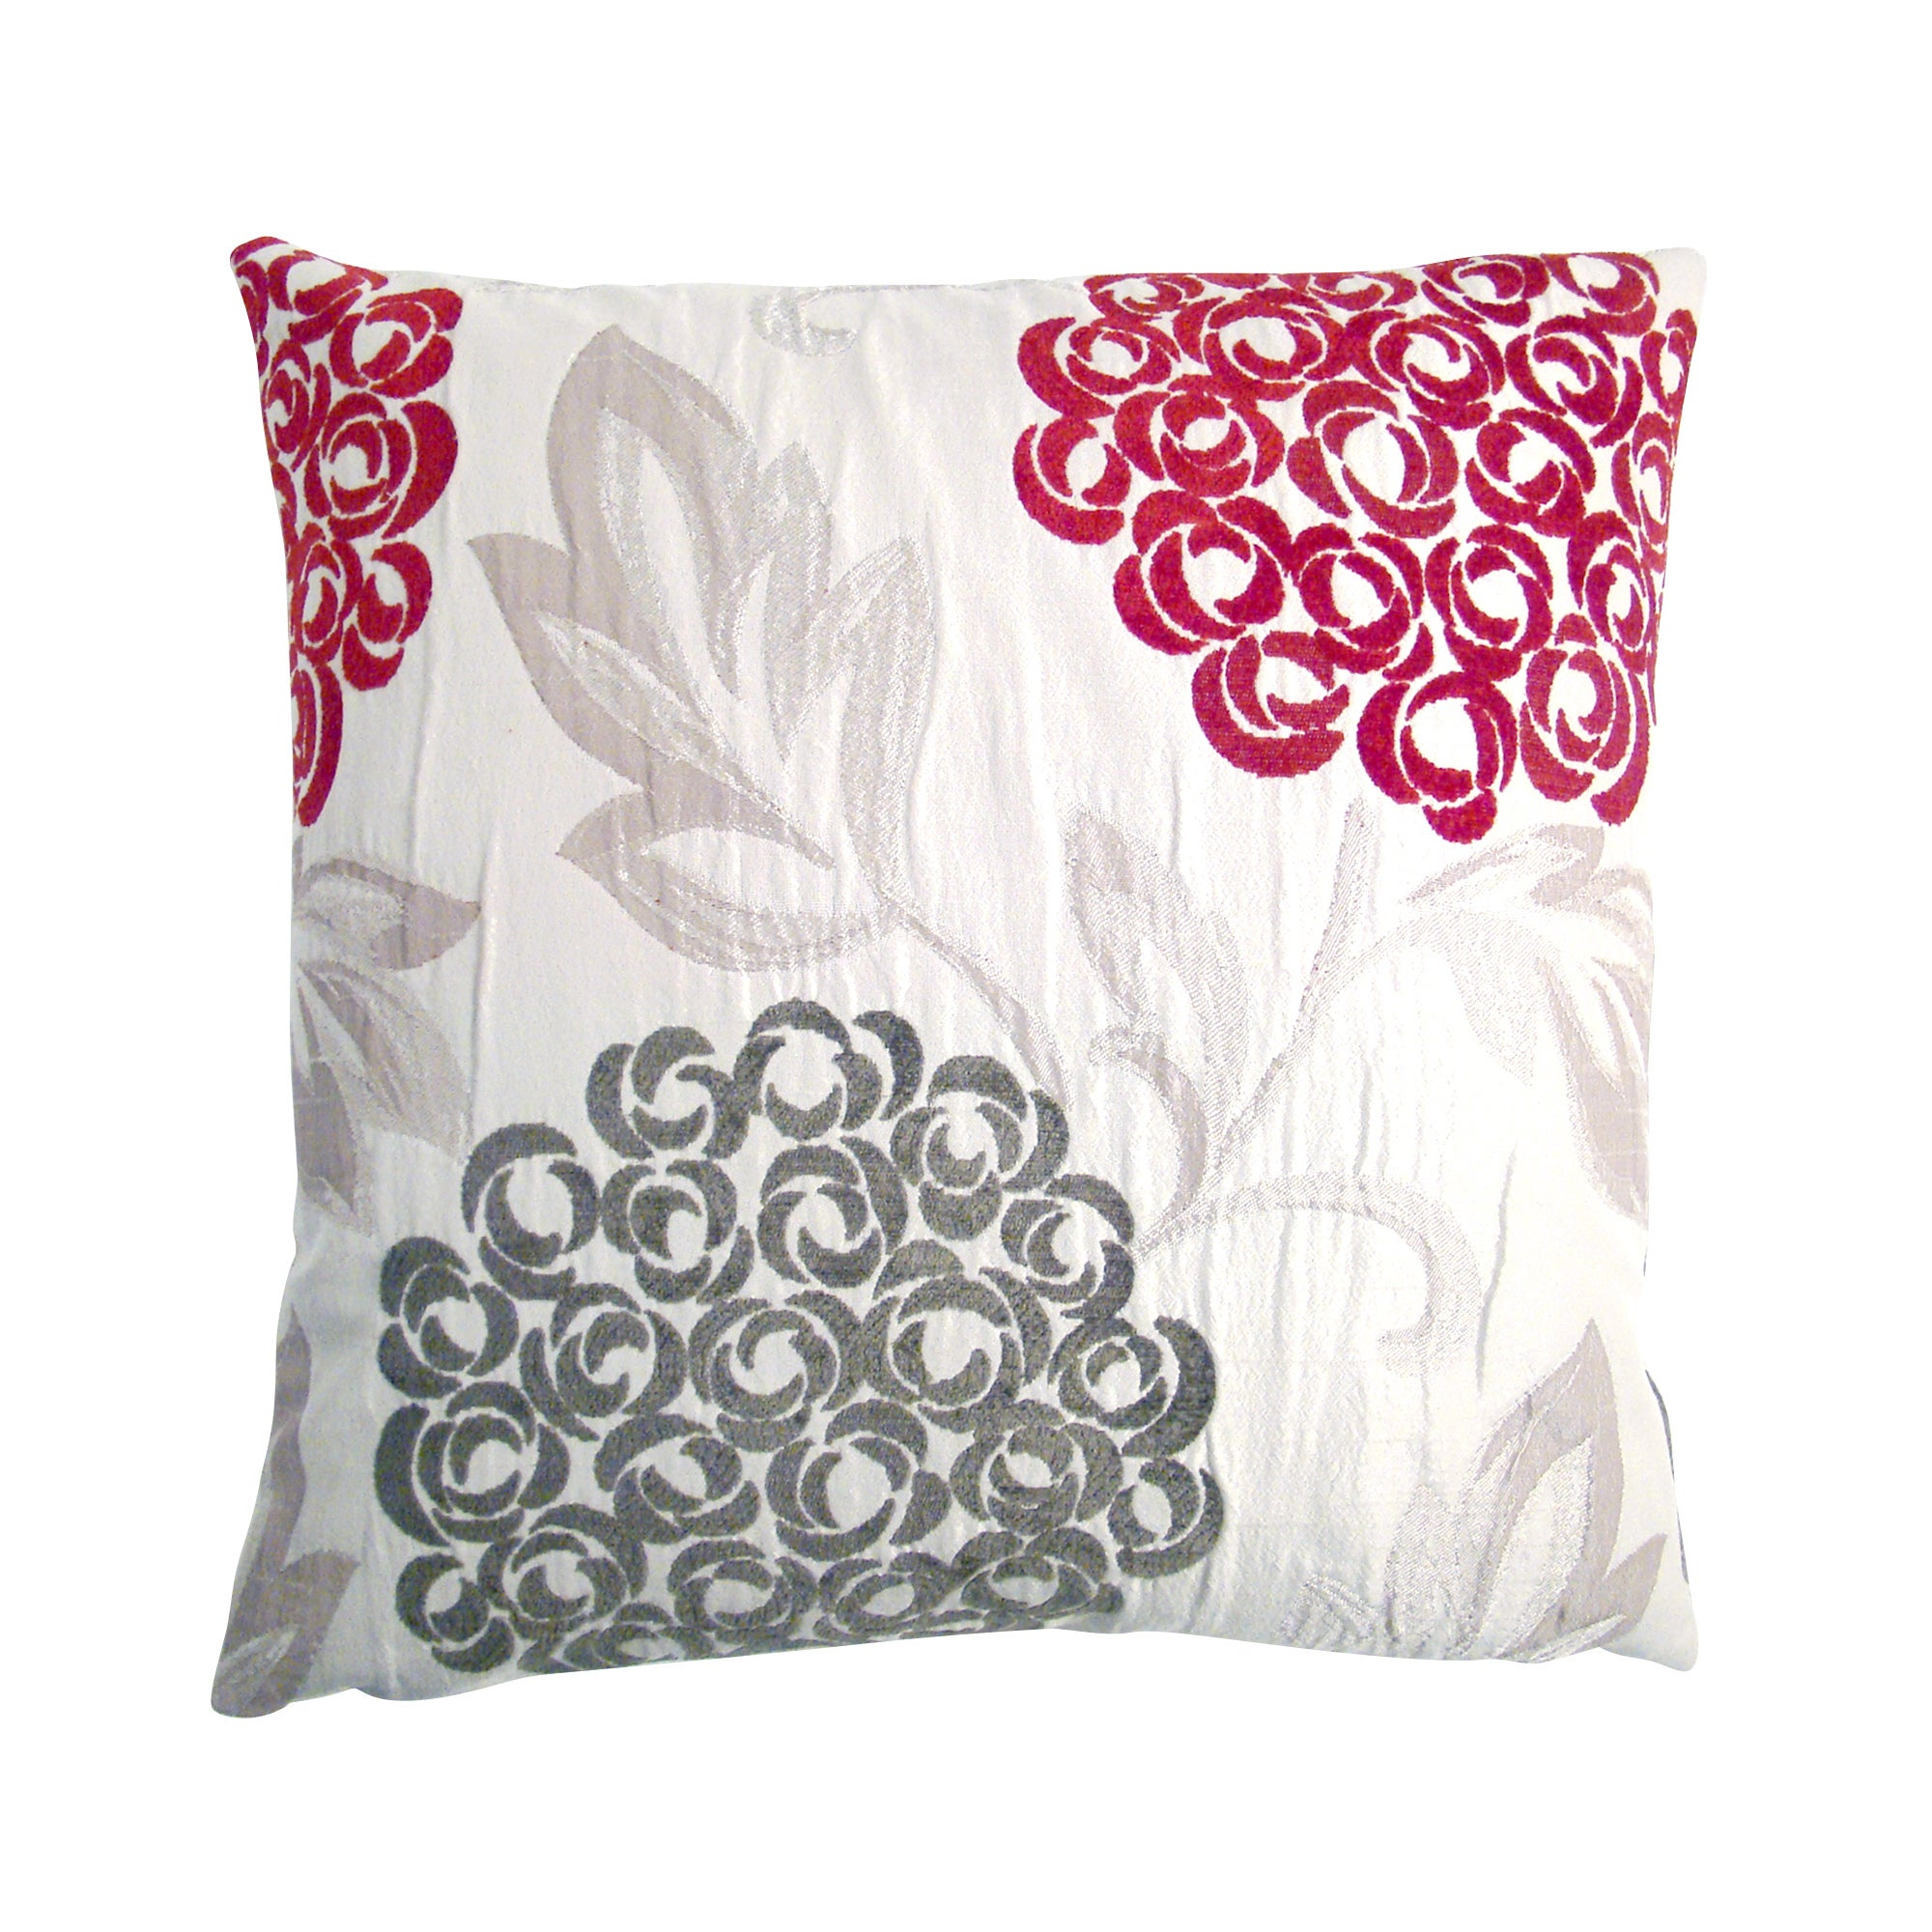 Photo of Rosetti cushion cover red